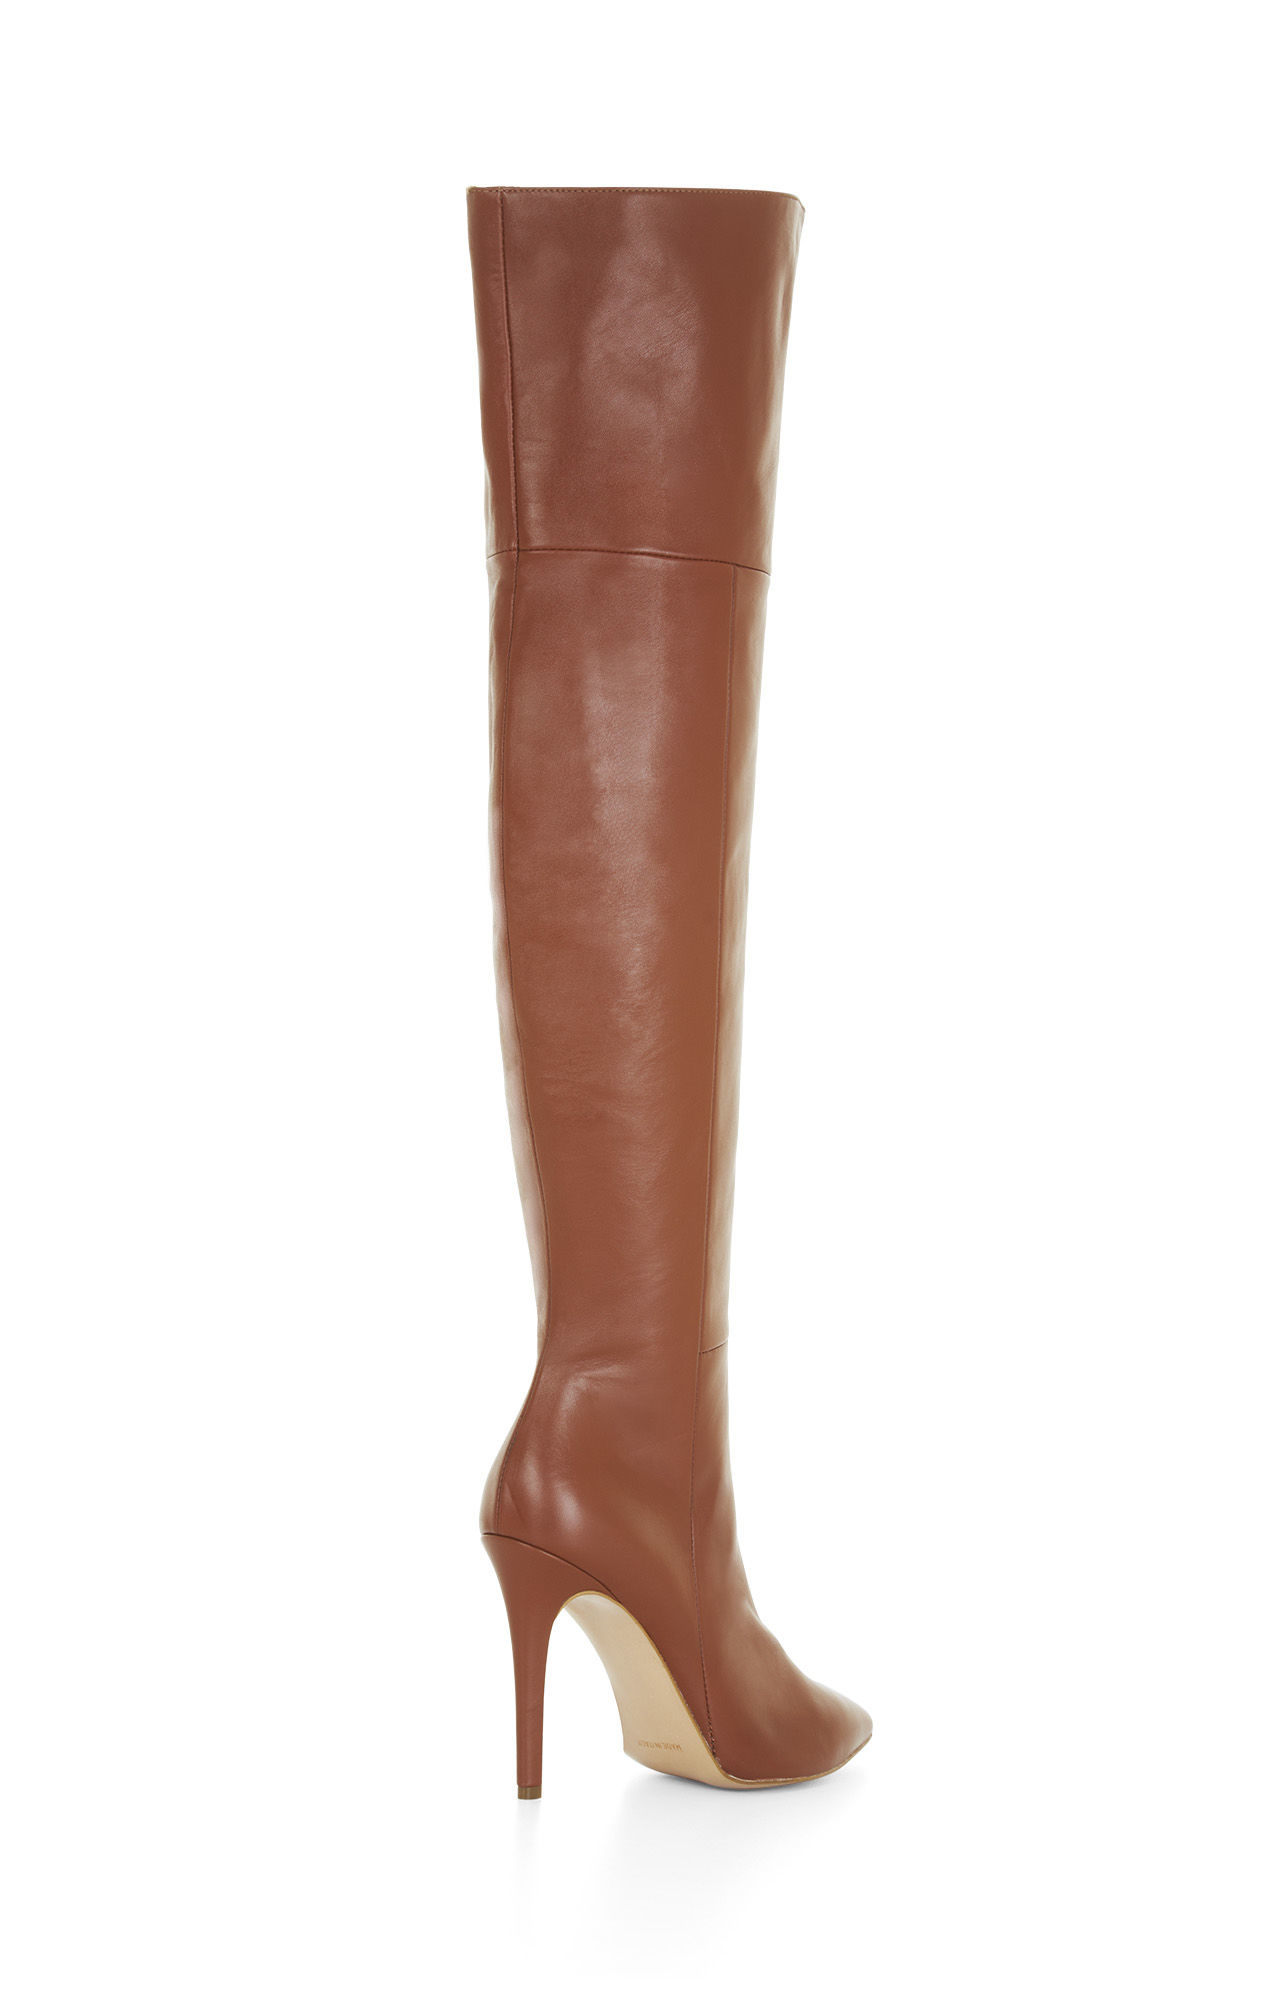 Bcbgmaxazria Abella High-heel Over-the-knee Leather Boots in Brown